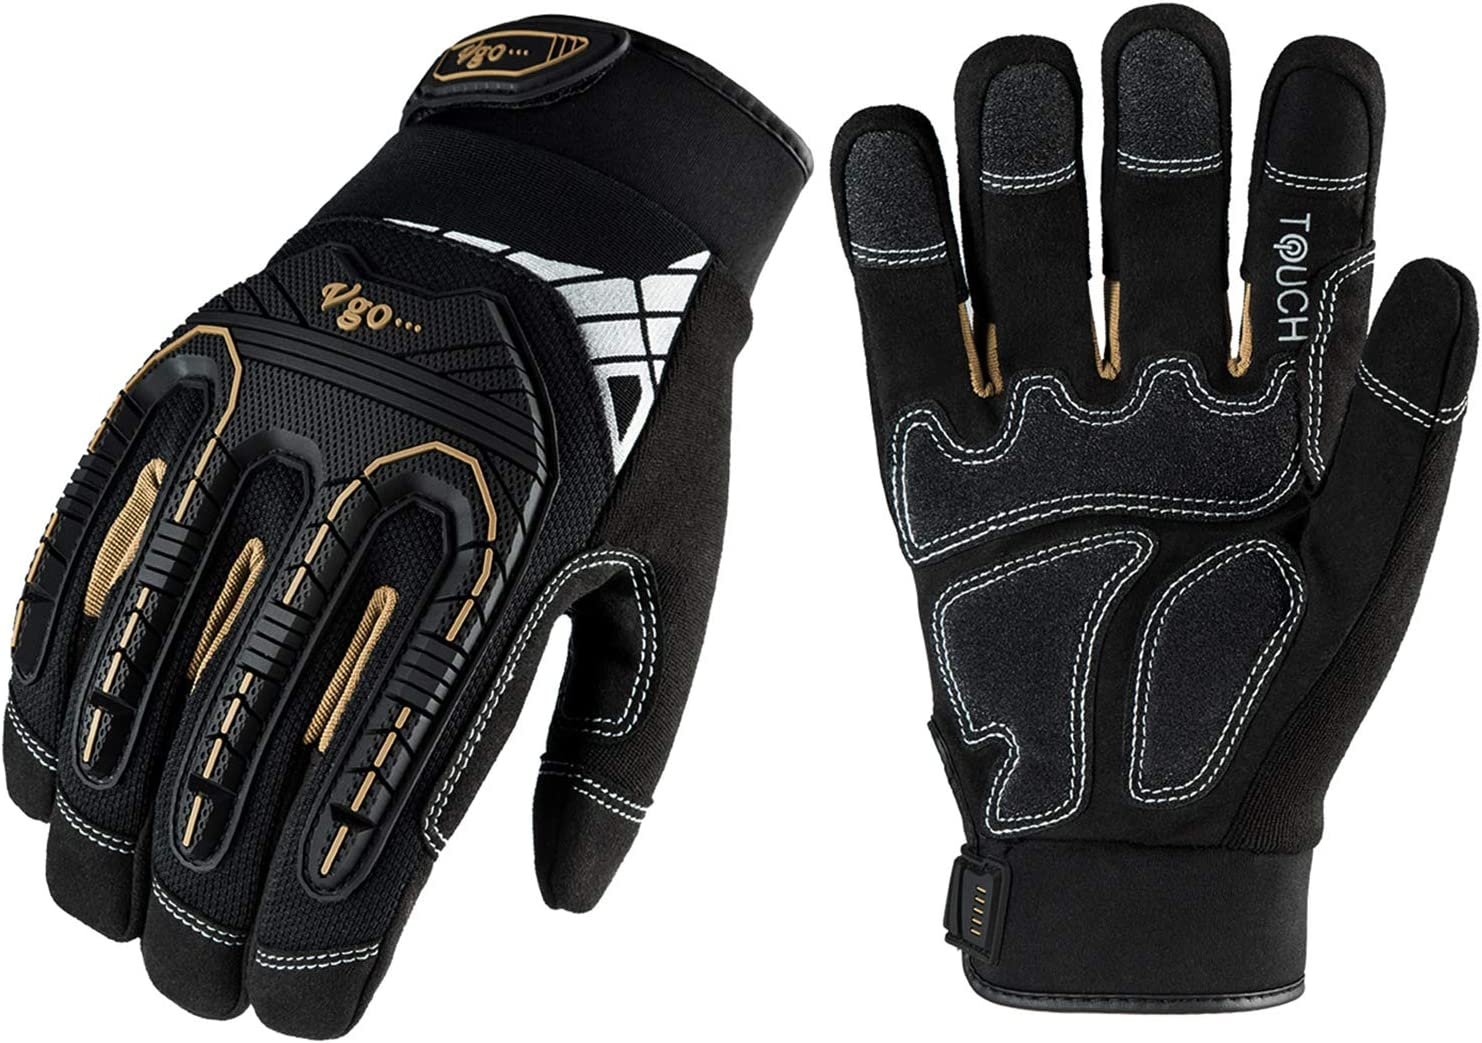 Vgo 1-Pair Heavy-Duty Synthetic Leather Work Gloves, Impact Protection Mechanic Gloves, Rigger Gloves, High Dexterity, Vibration Reduction, Touchscreen Capable (Size S, Black, SL8849)